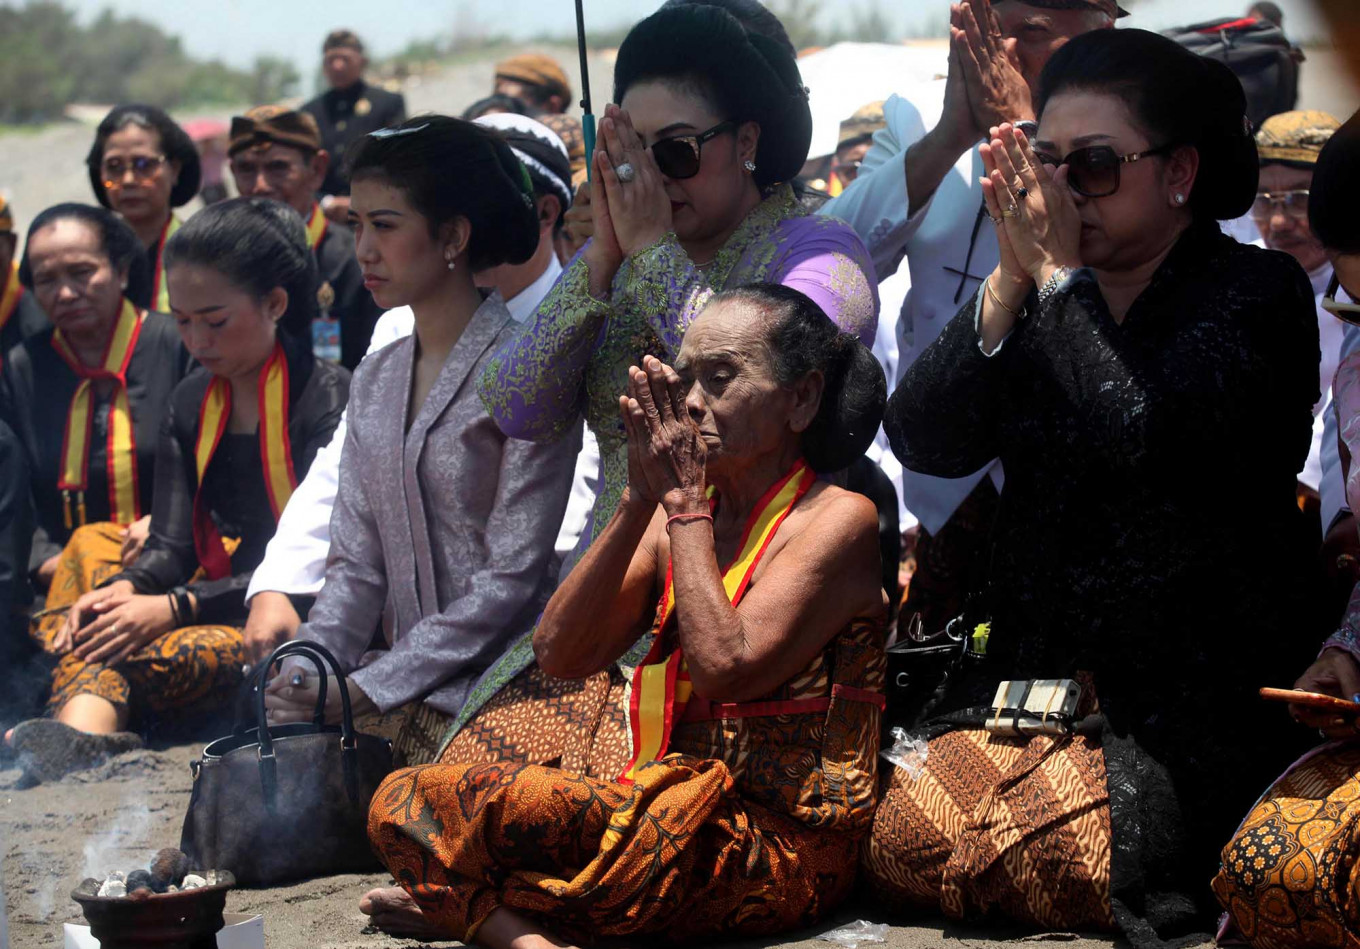 Solemn: Two daughters of Pakubuwono XII, GKR Koes Moertiyah (right) and GKR Koes Indriyah (left), along with a senior female royal servant, pray. JP/ Boy T Harjanto